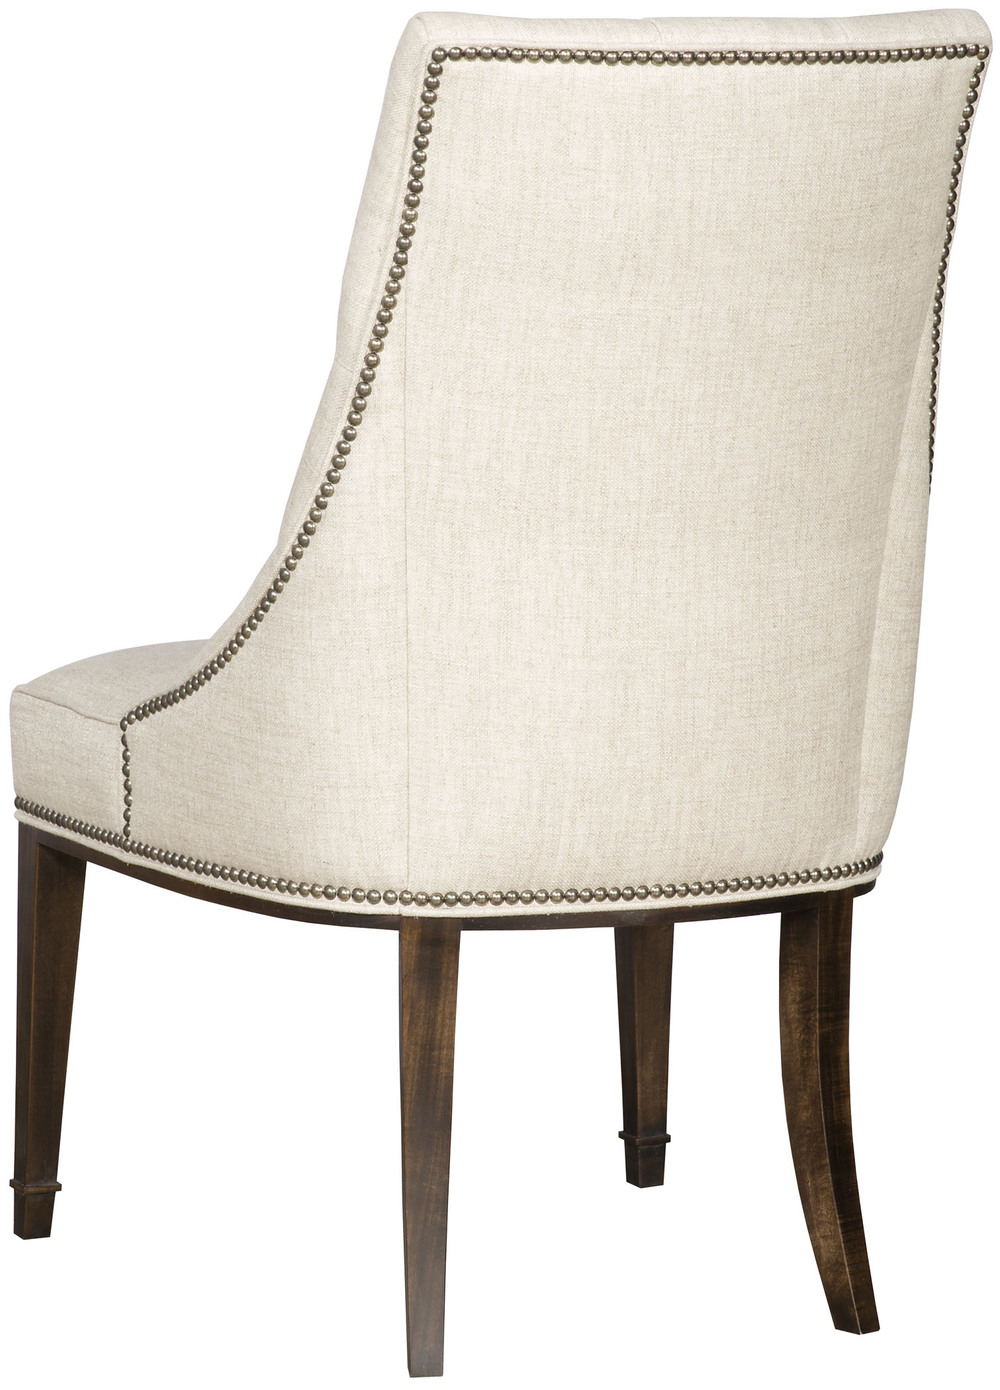 Vanguard Furniture - Brinley Tufted Side Chair